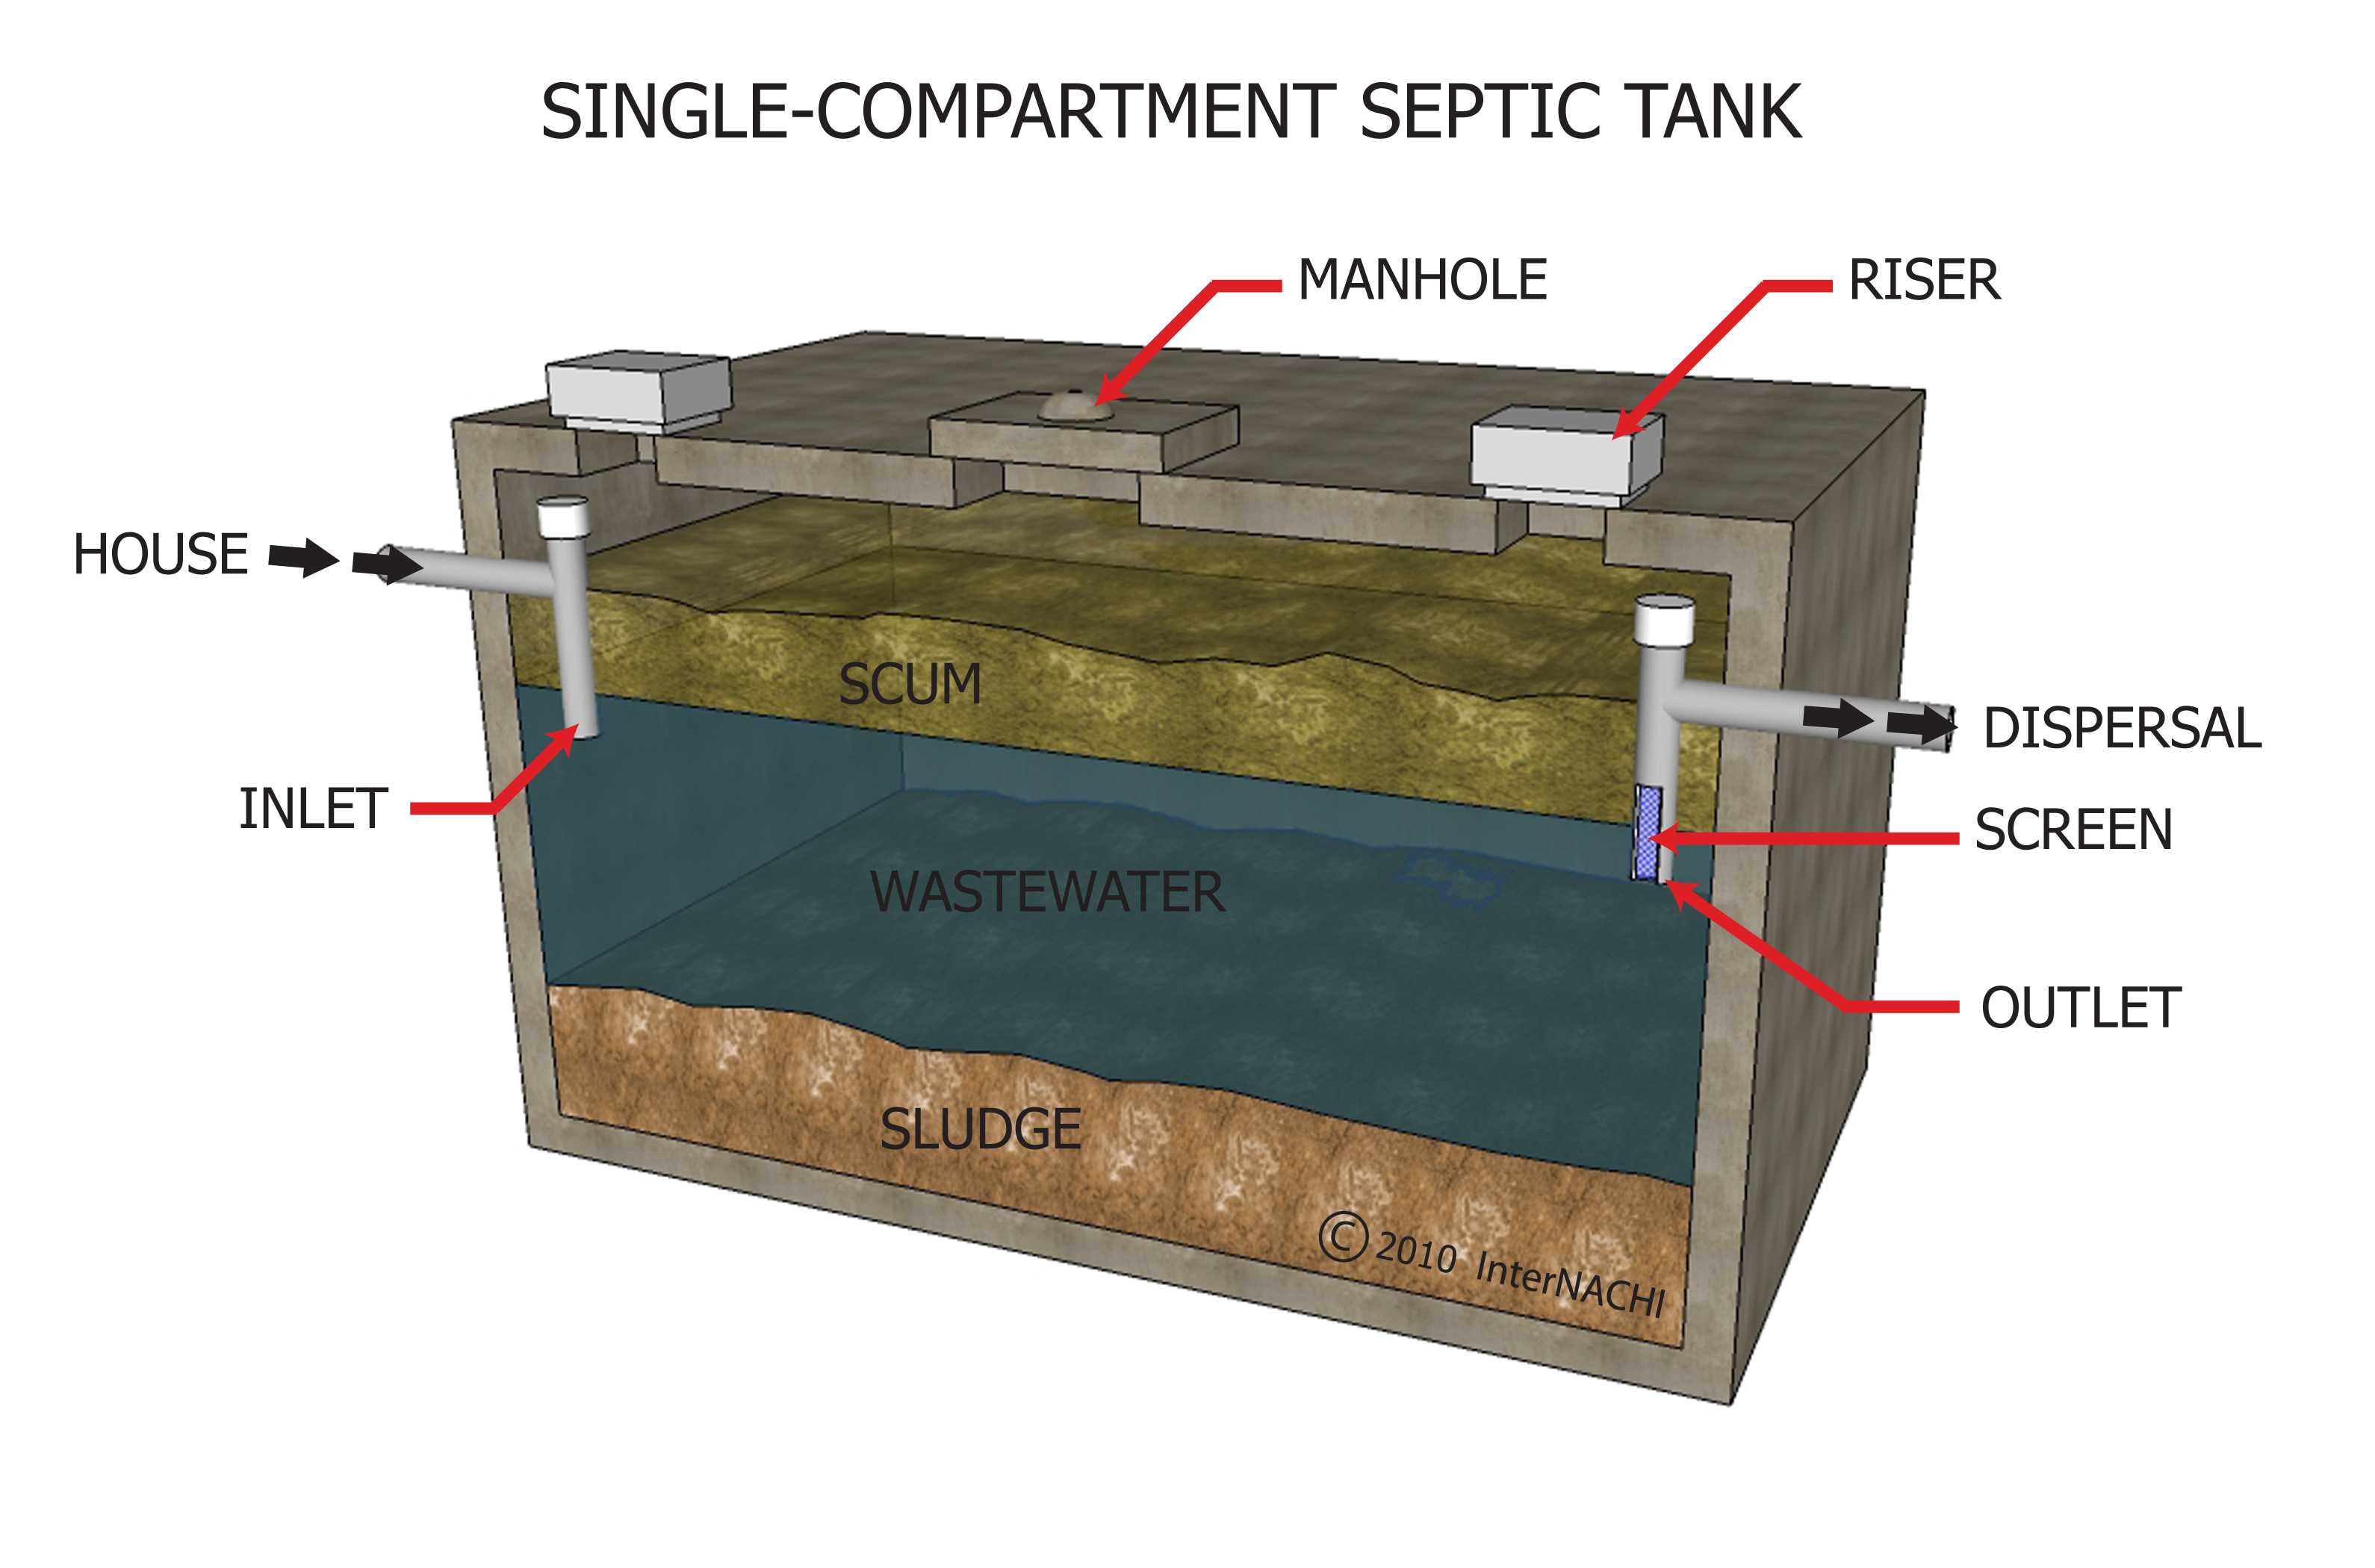 Single-compartment septic tank.